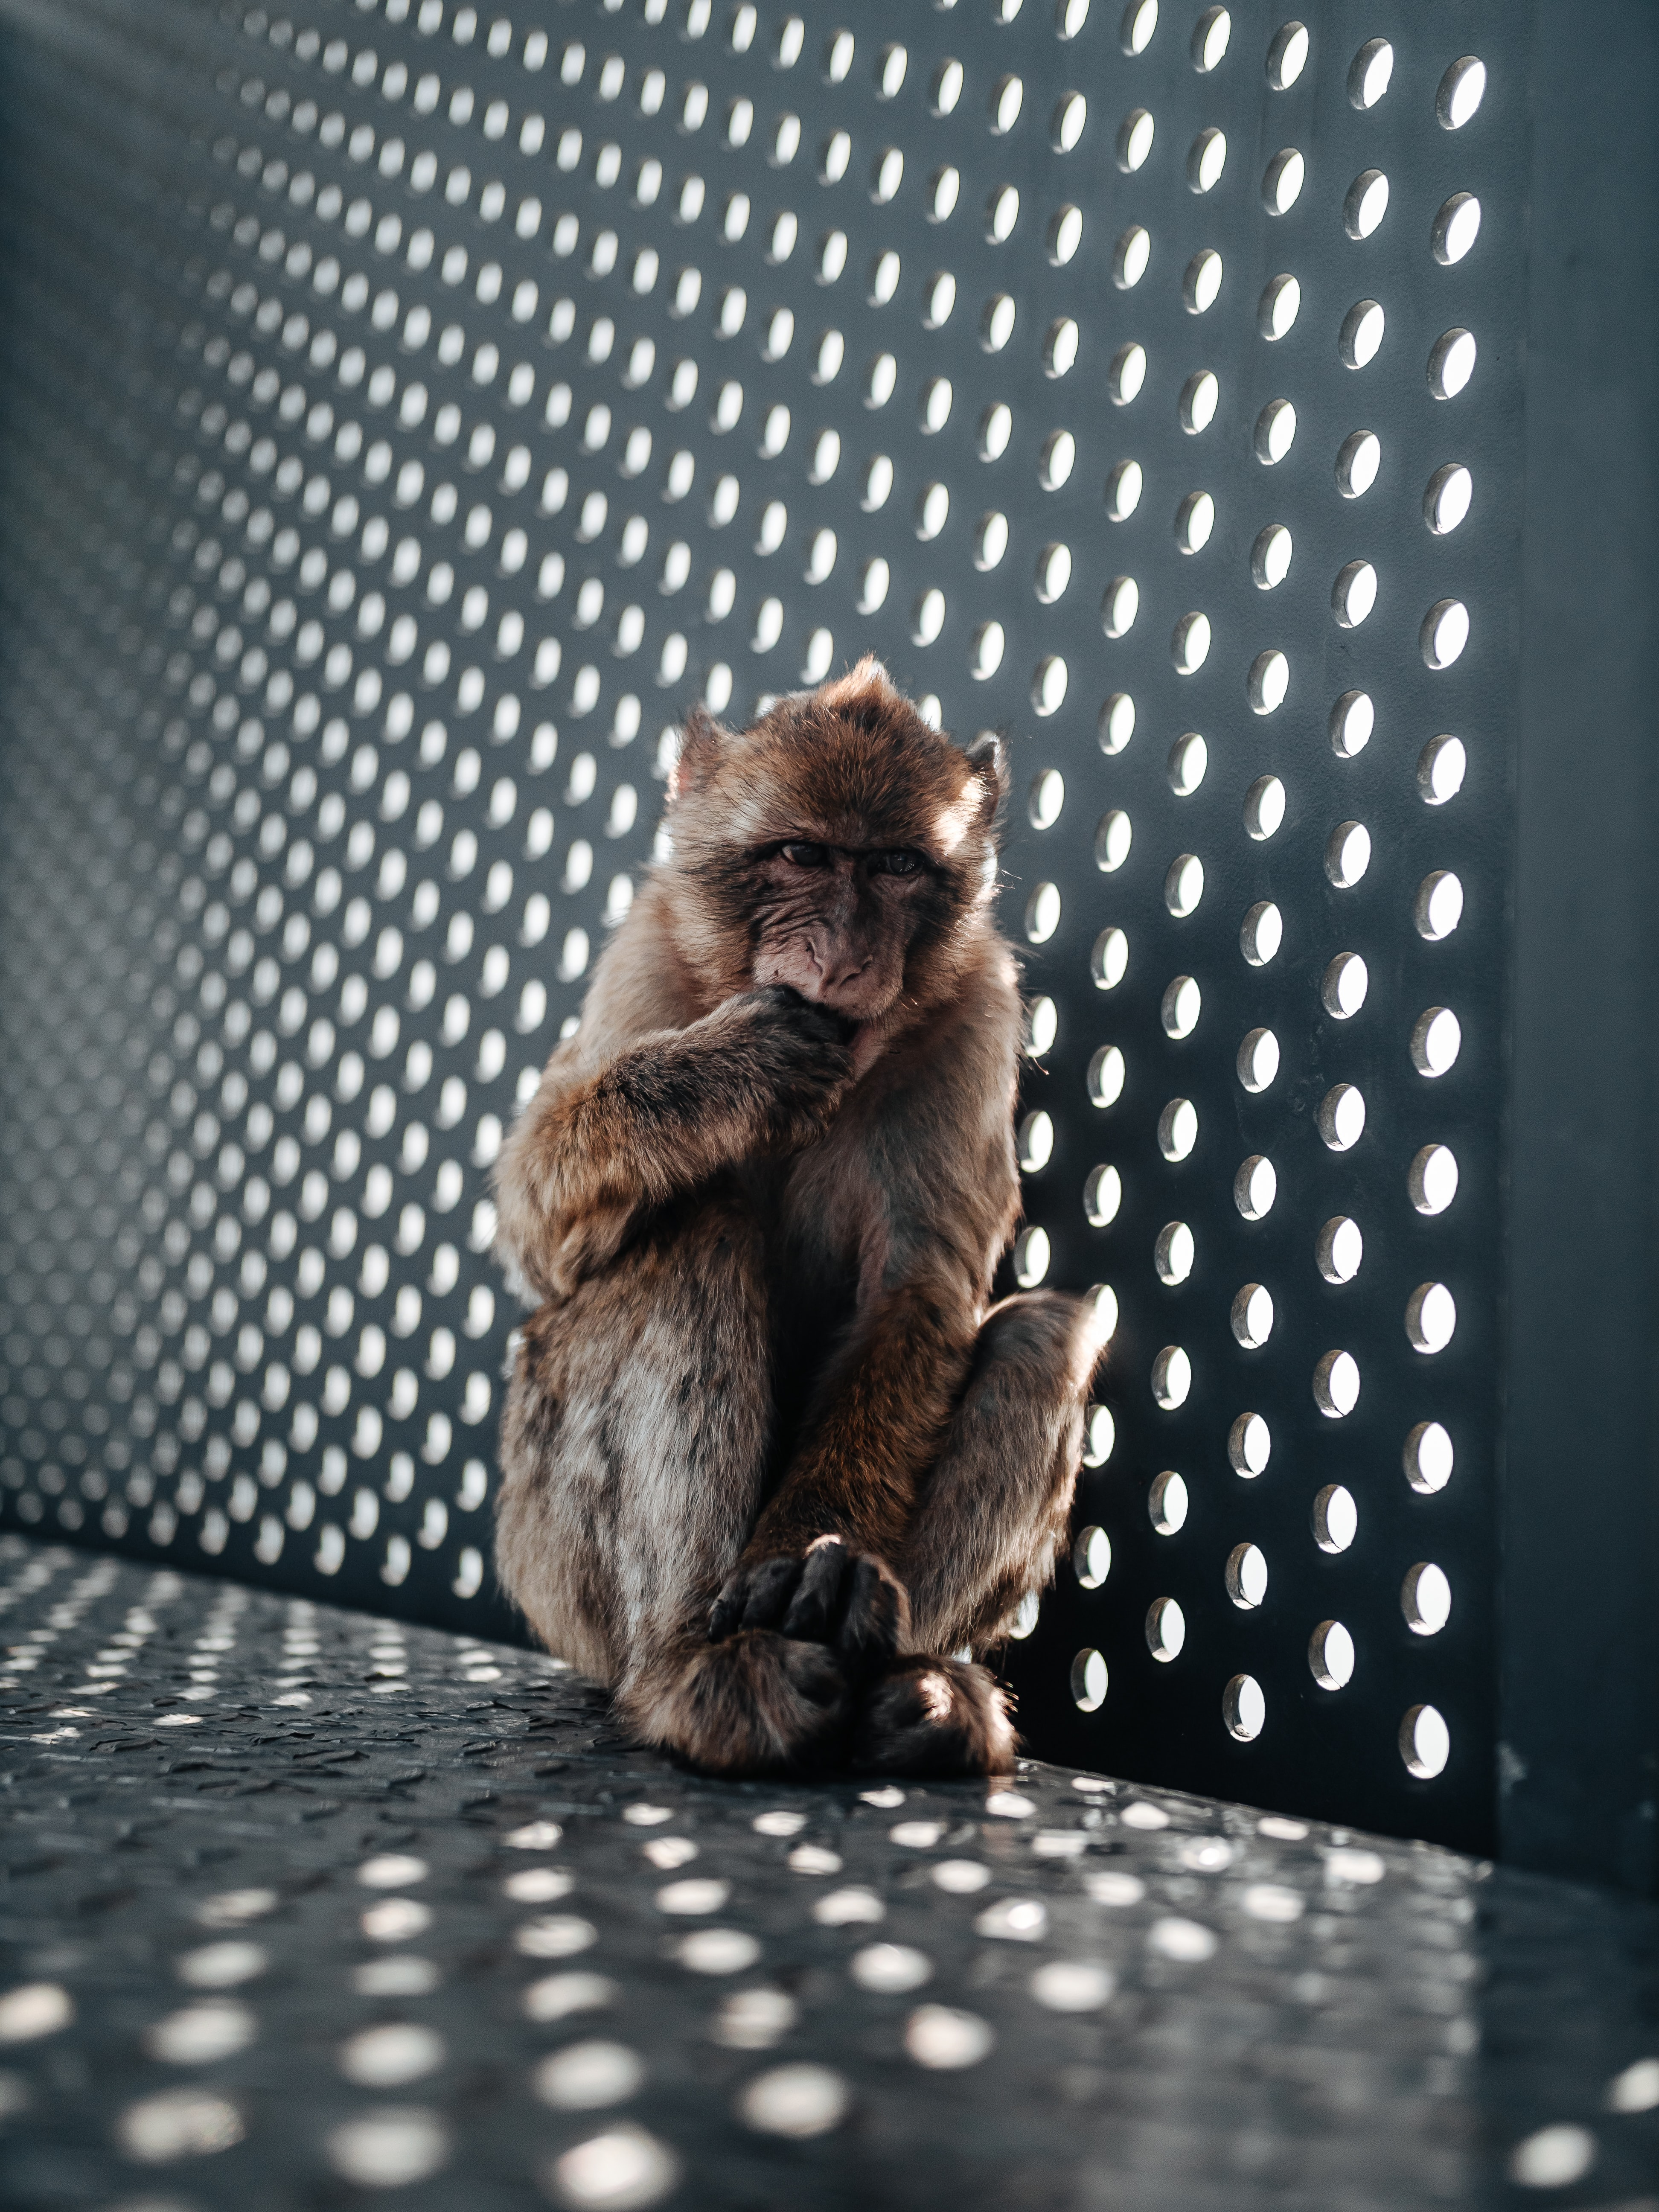 70514 download wallpaper Animals, Monkey, Nice, Sweetheart, Young, Joey, Animal screensavers and pictures for free